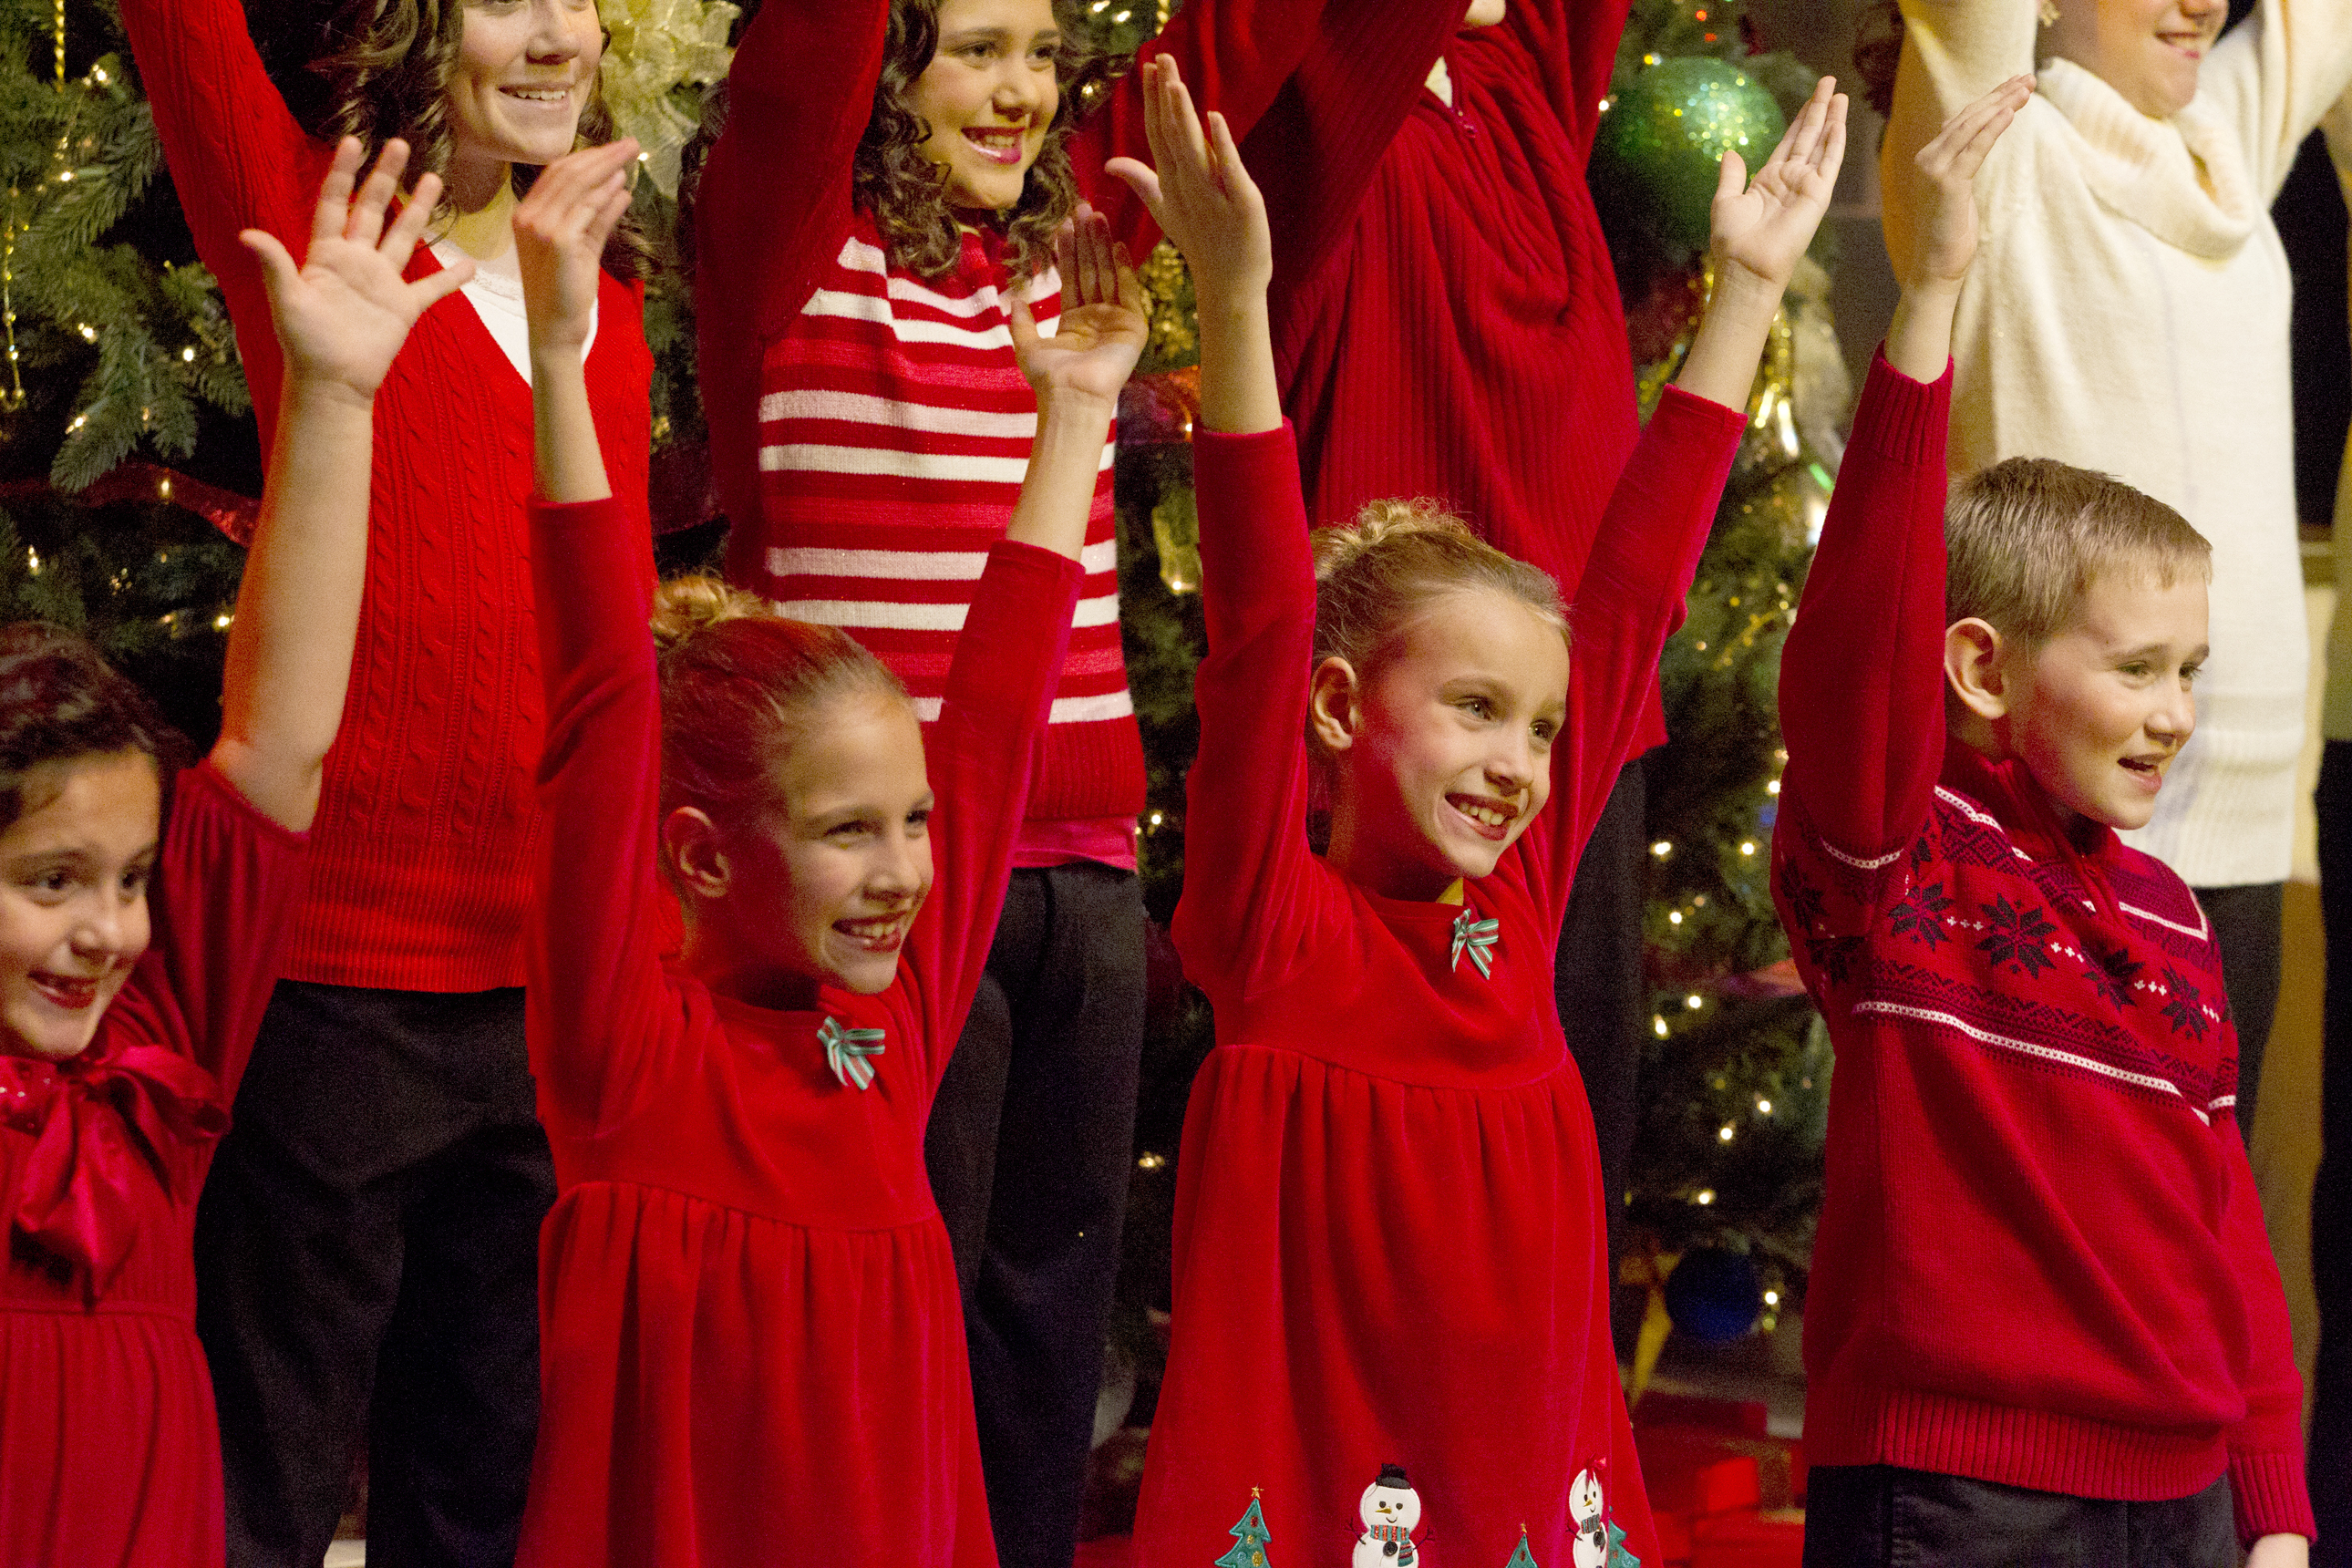 the kids choir shown in this file photo has been a key part of the annual purdue christmas show for many years